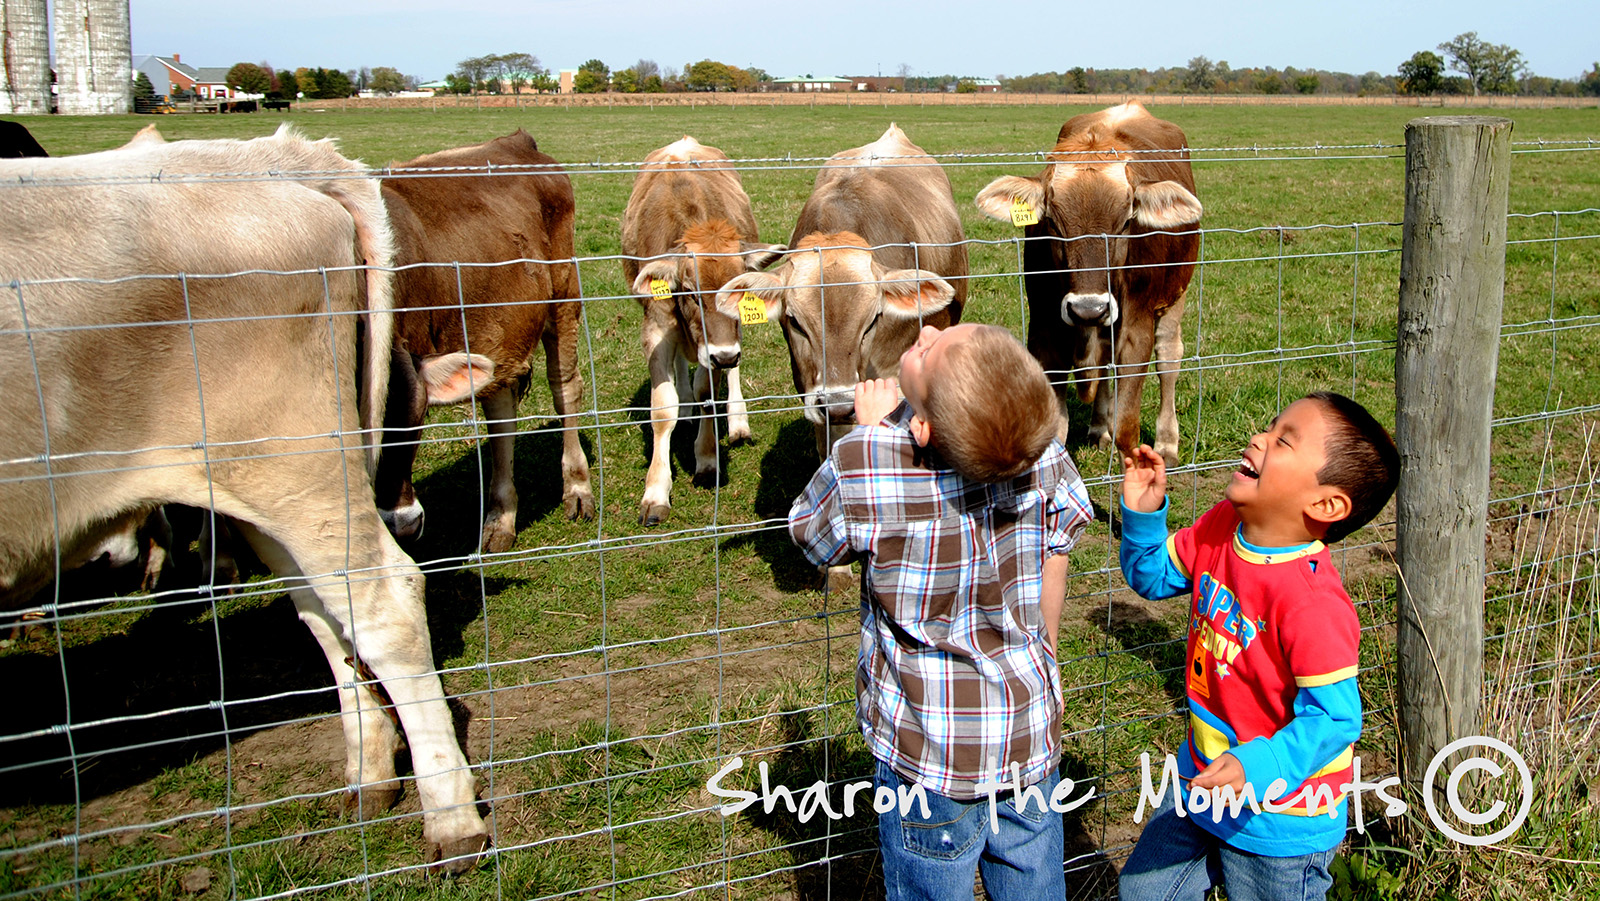 Cows and Boys being Boys at Orchard and Company Fall Outing|Sharon the Moments blog